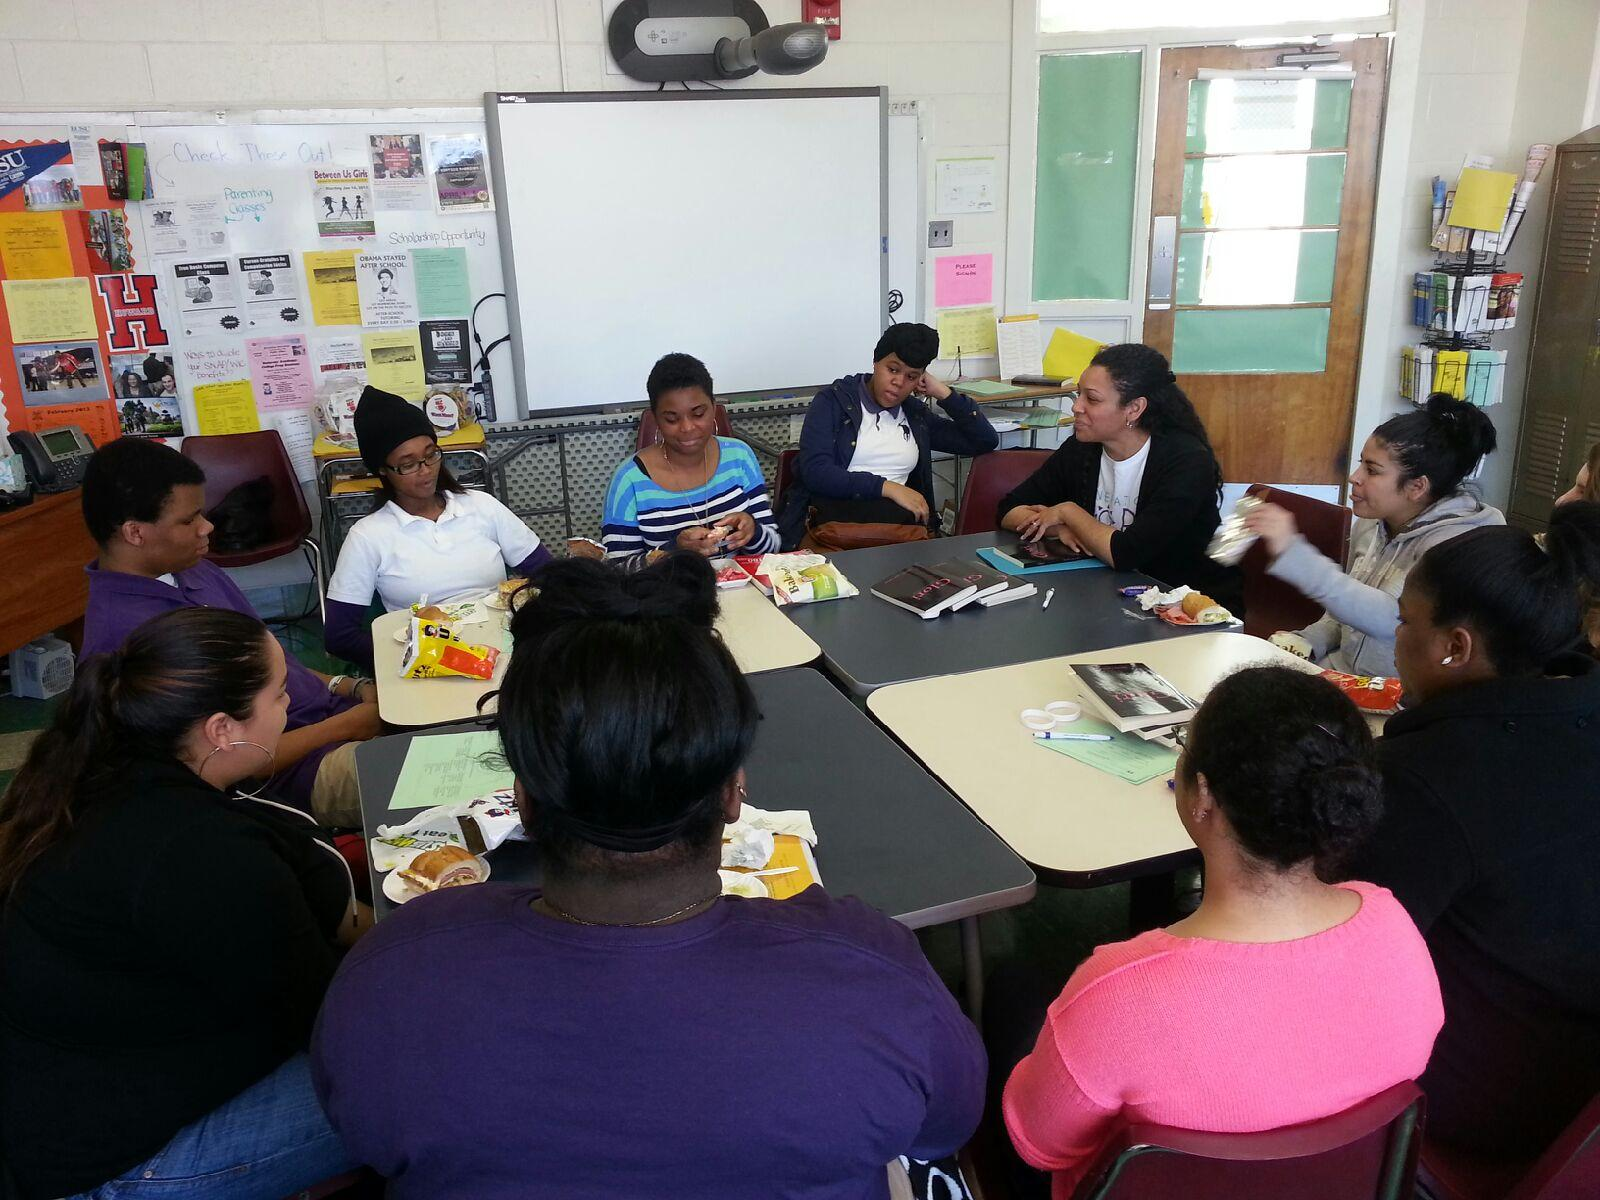 Founder & CEO Nicole Lynn Lewis presenting a workshop at Cardozo High School in D.C. -- a New Heights site.